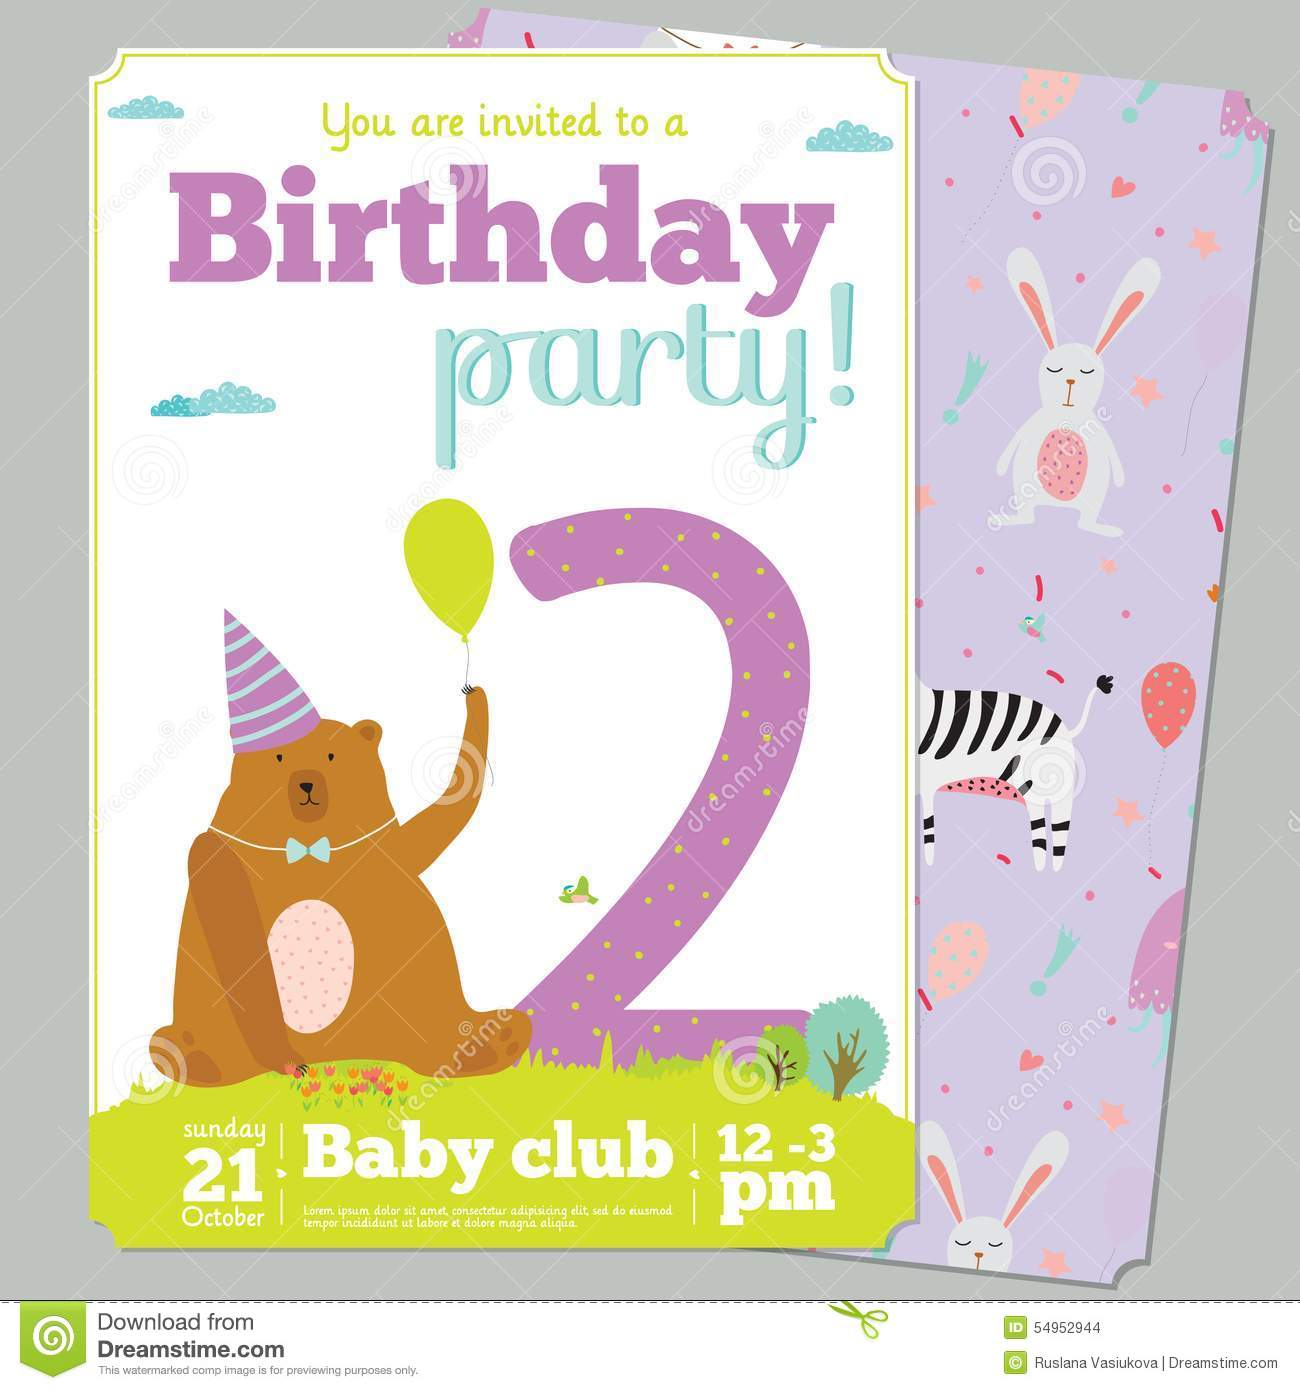 Birthday party invitation card template with cute stock vector birthday party invitation card template with cute cartoon cheerful stopboris Choice Image